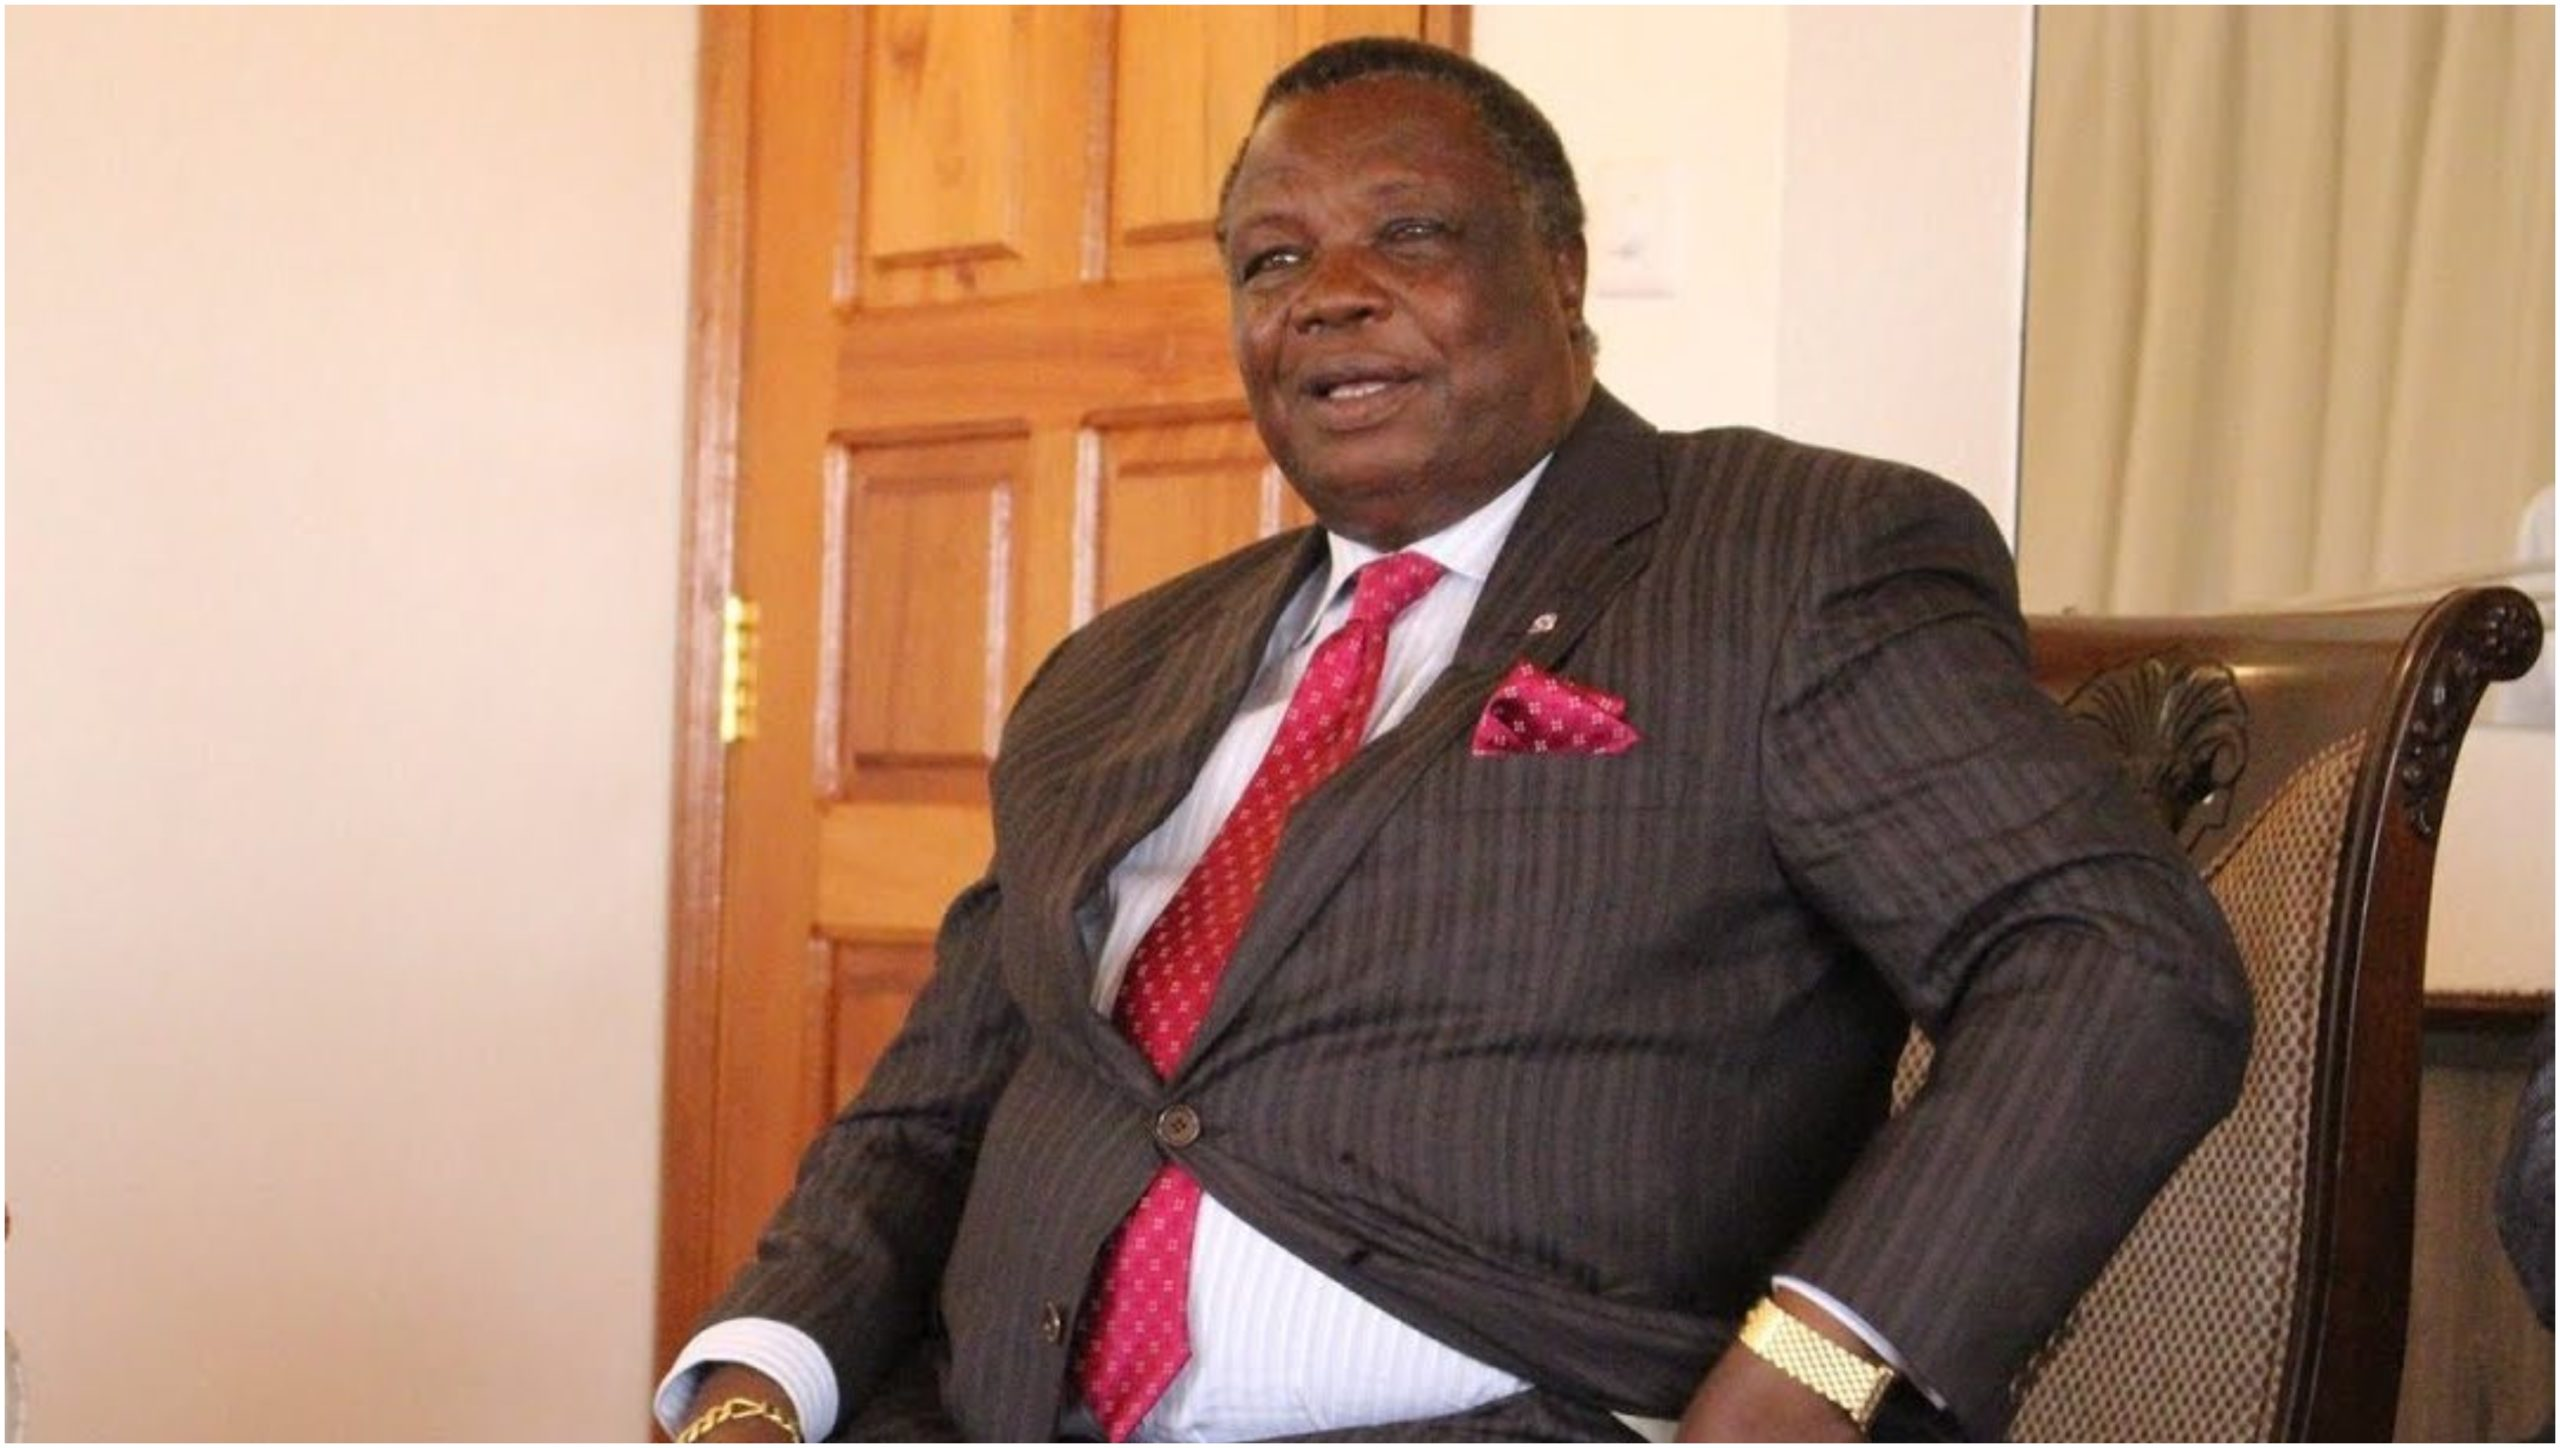 Photos of Atwoli´s mzungu maid stirs heated debate